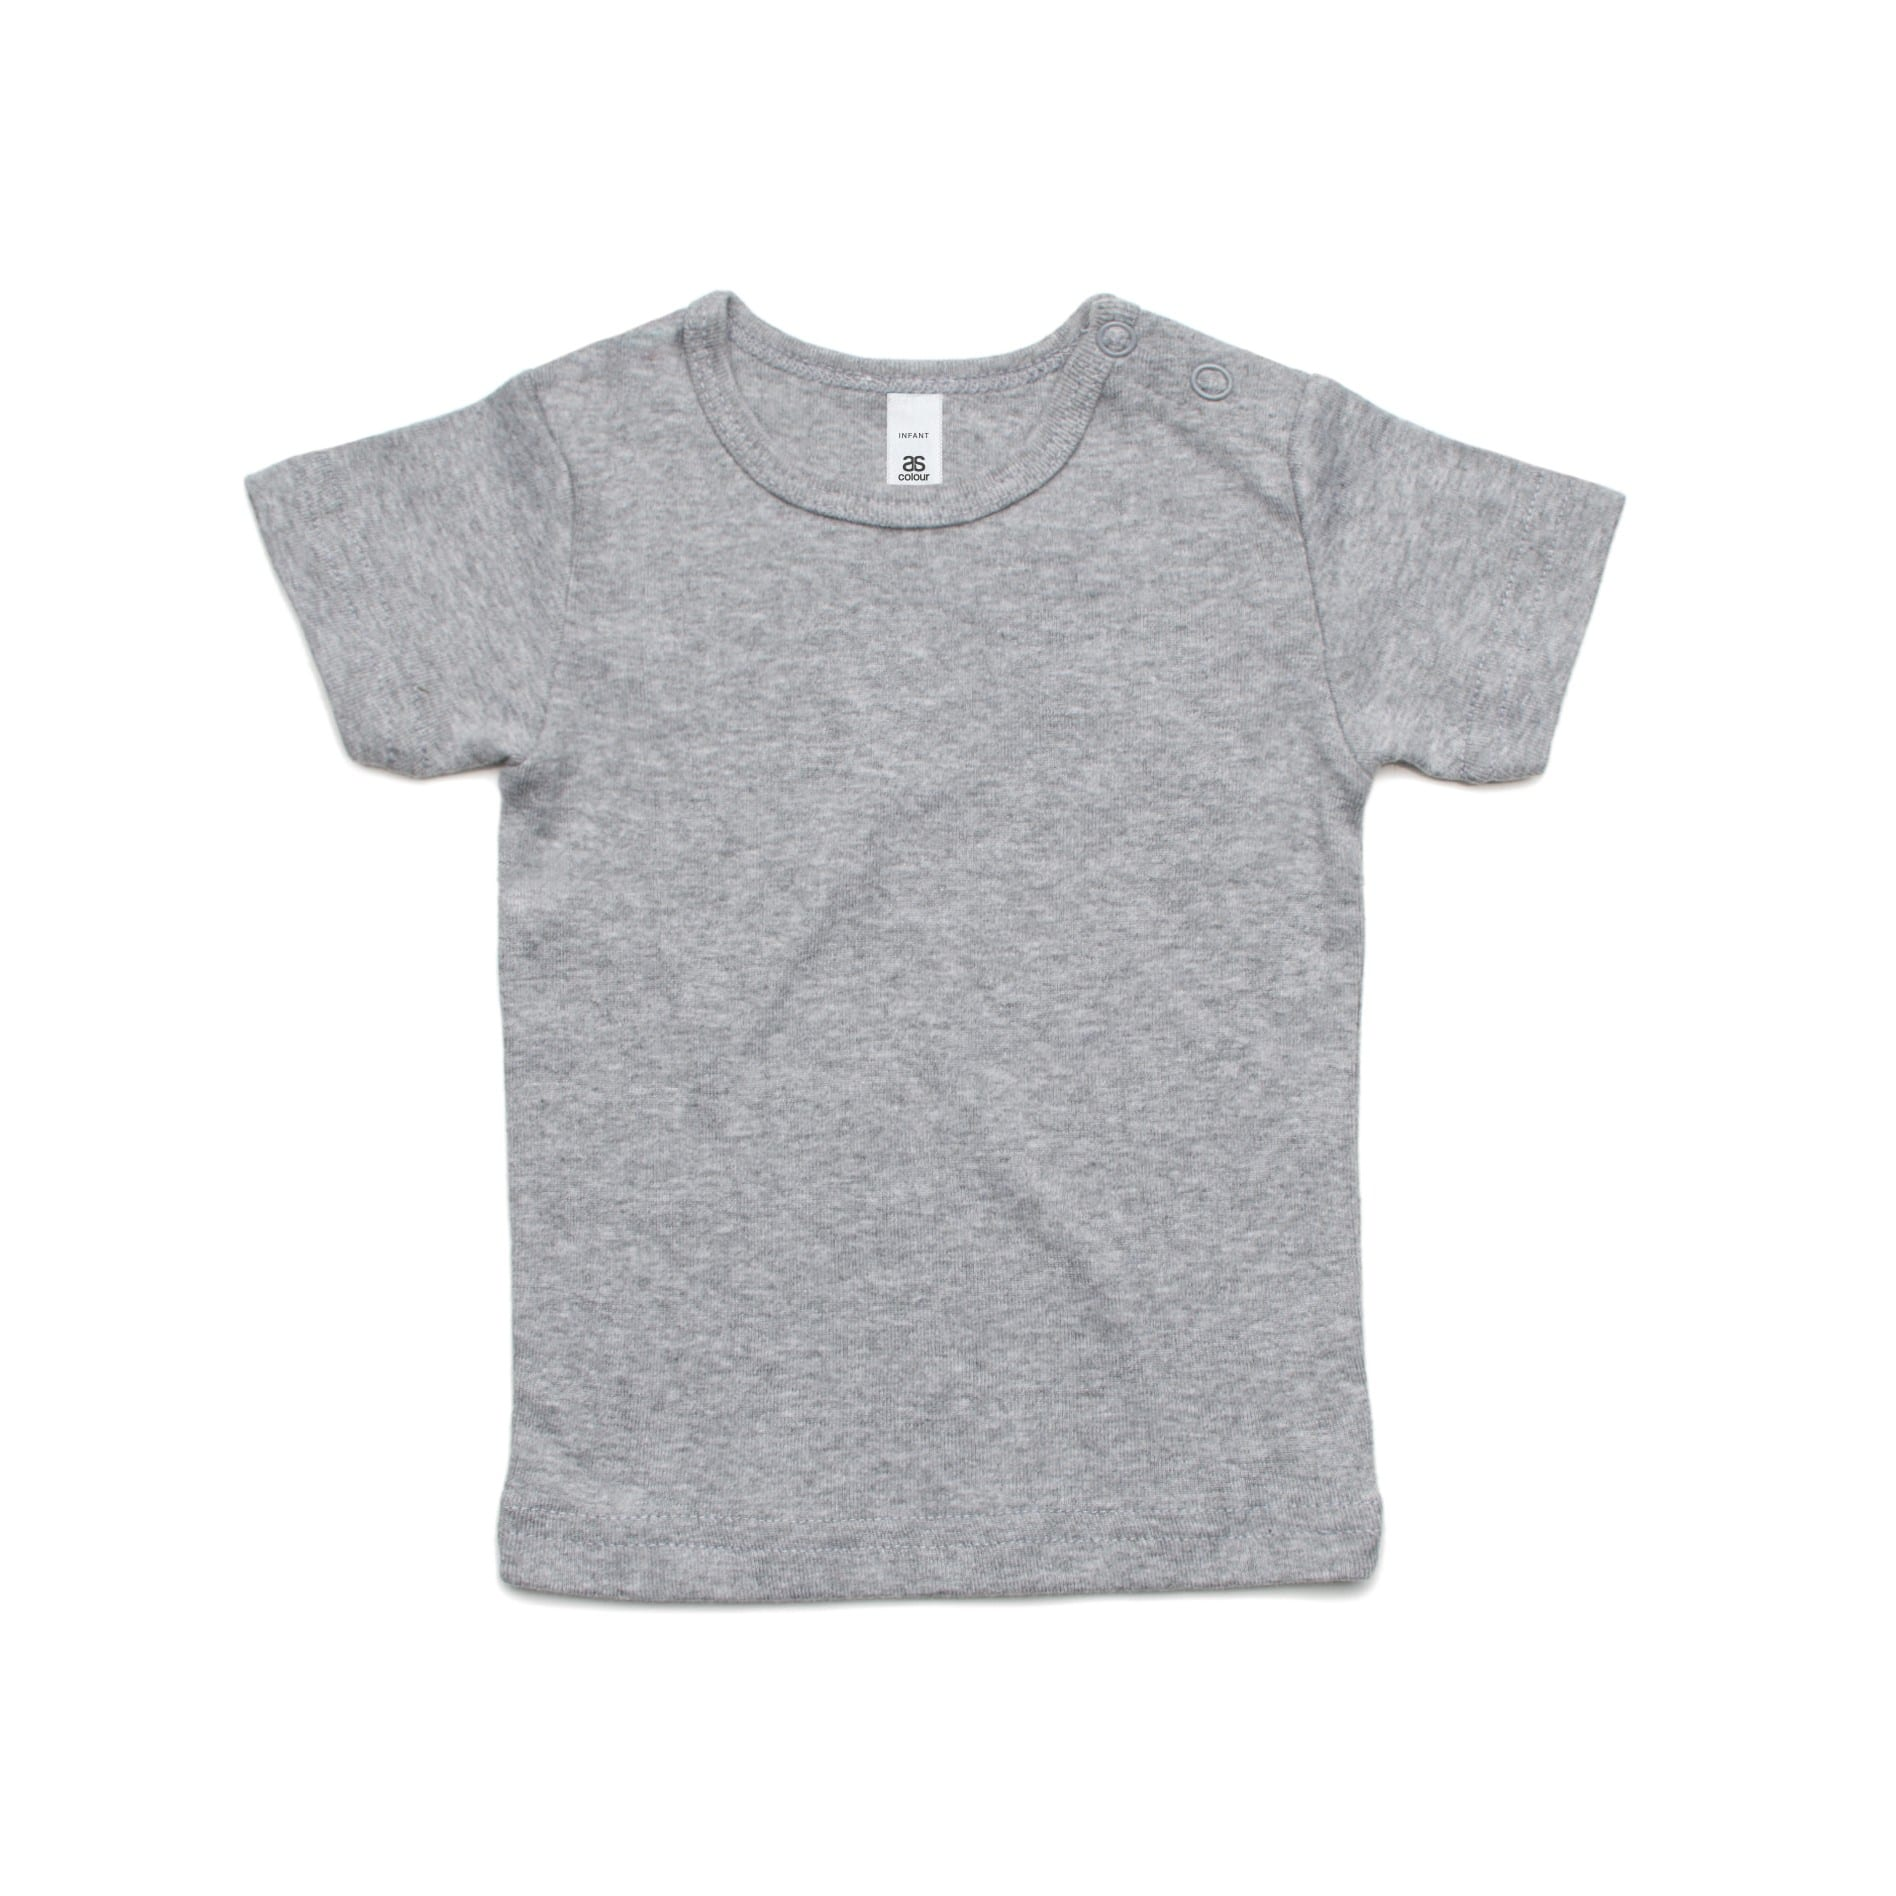 AS 3001 Infant Wee Tee